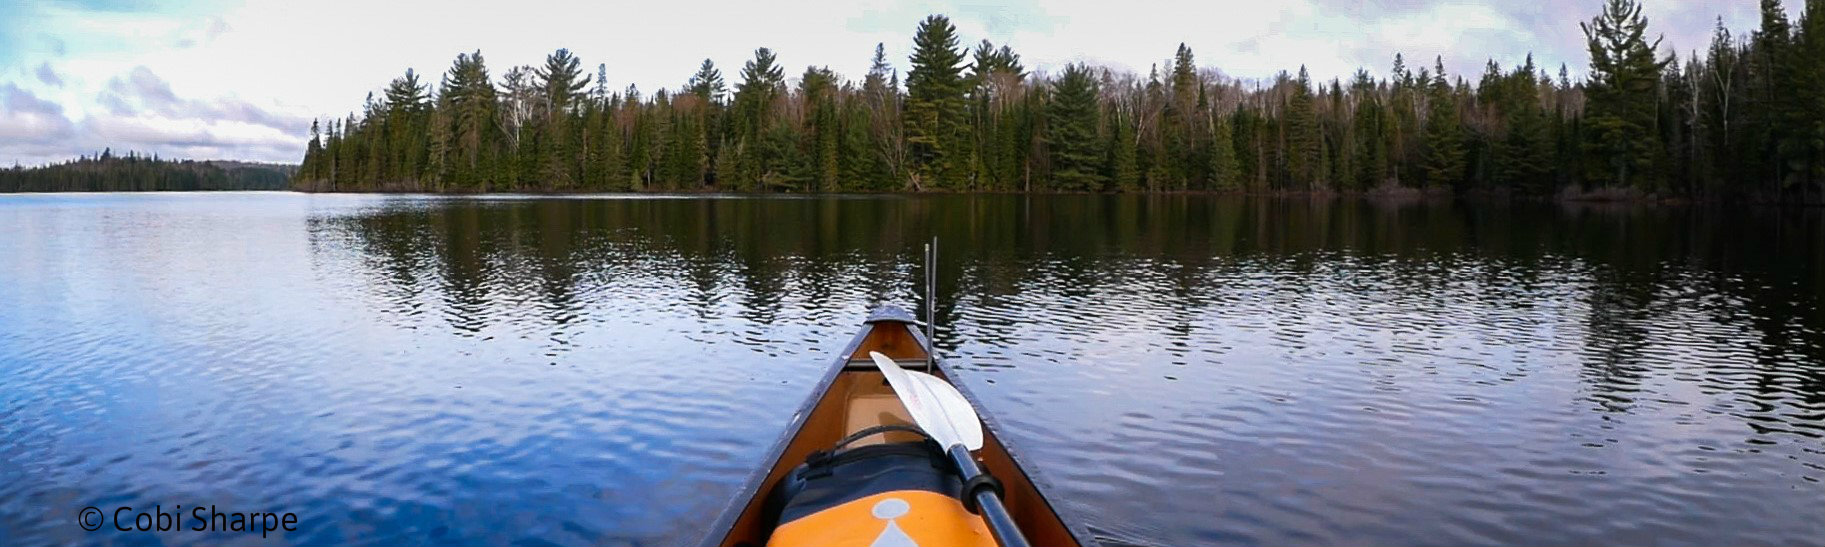 Why I went out alone in Algonquin Park